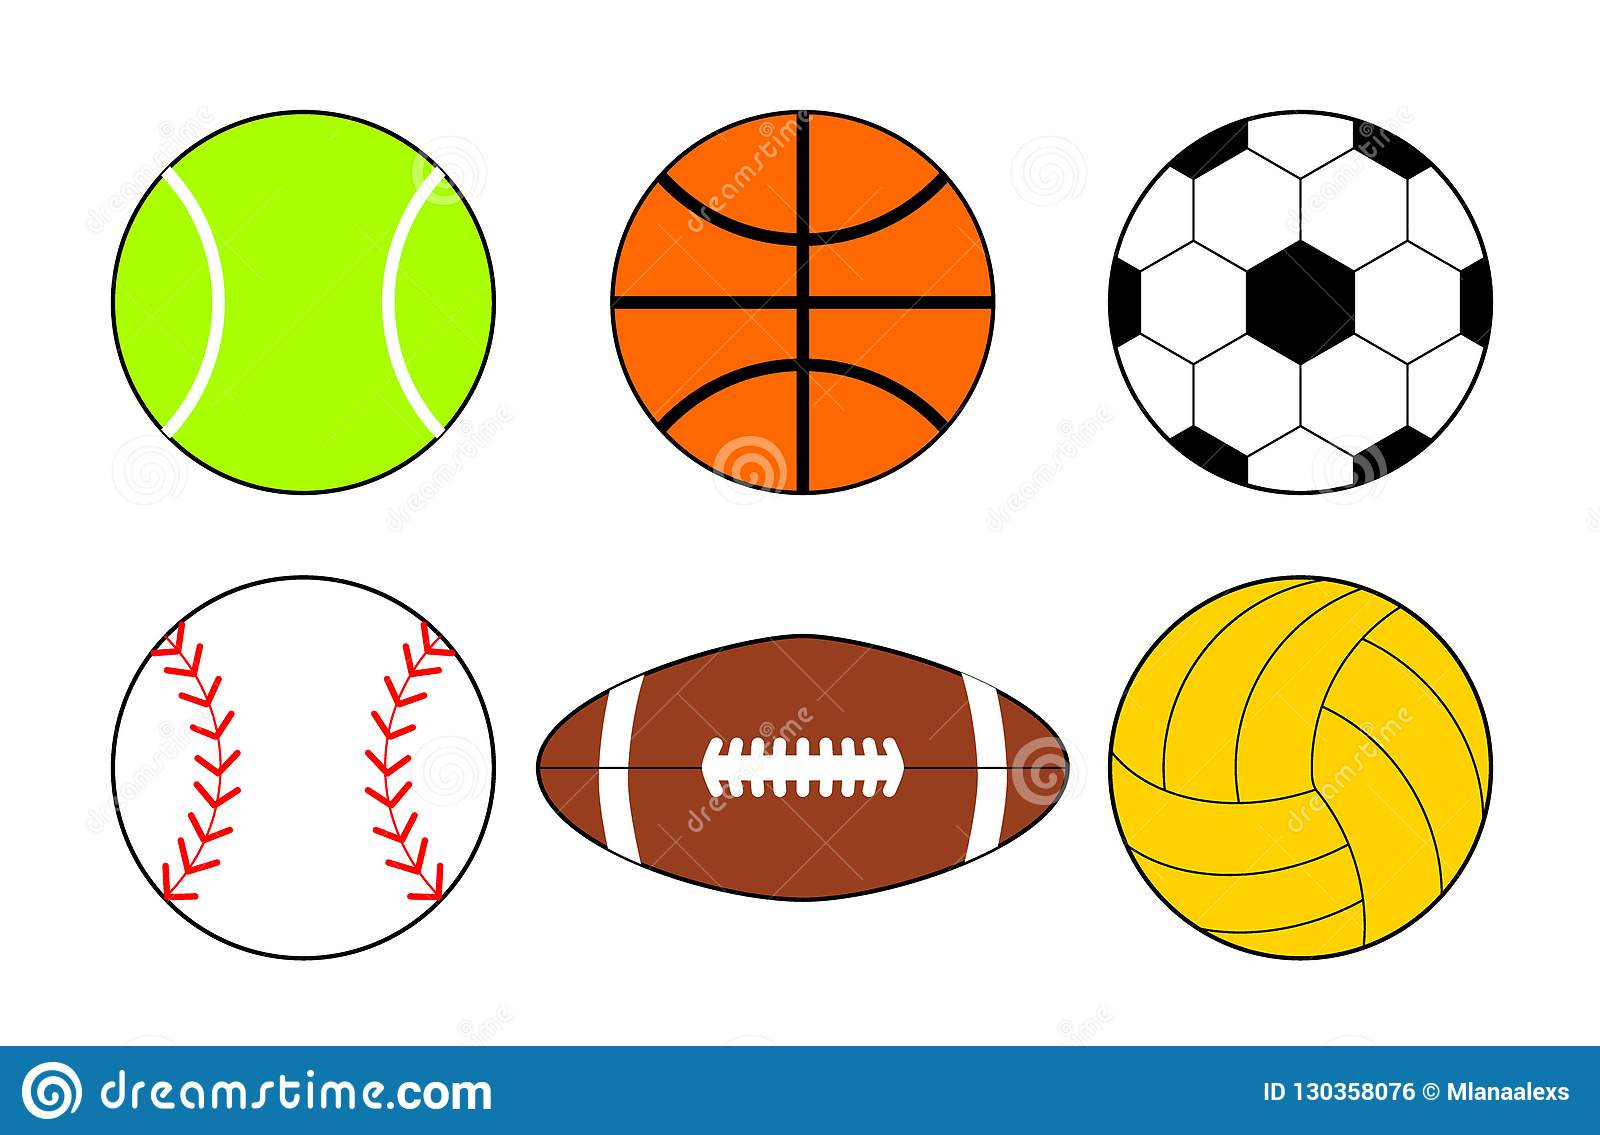 A Set Of Icons Of Balls From Different Sports Basketball And Football Balls Illustration Stock Vector Illustration Of Leisure Circle 130358076